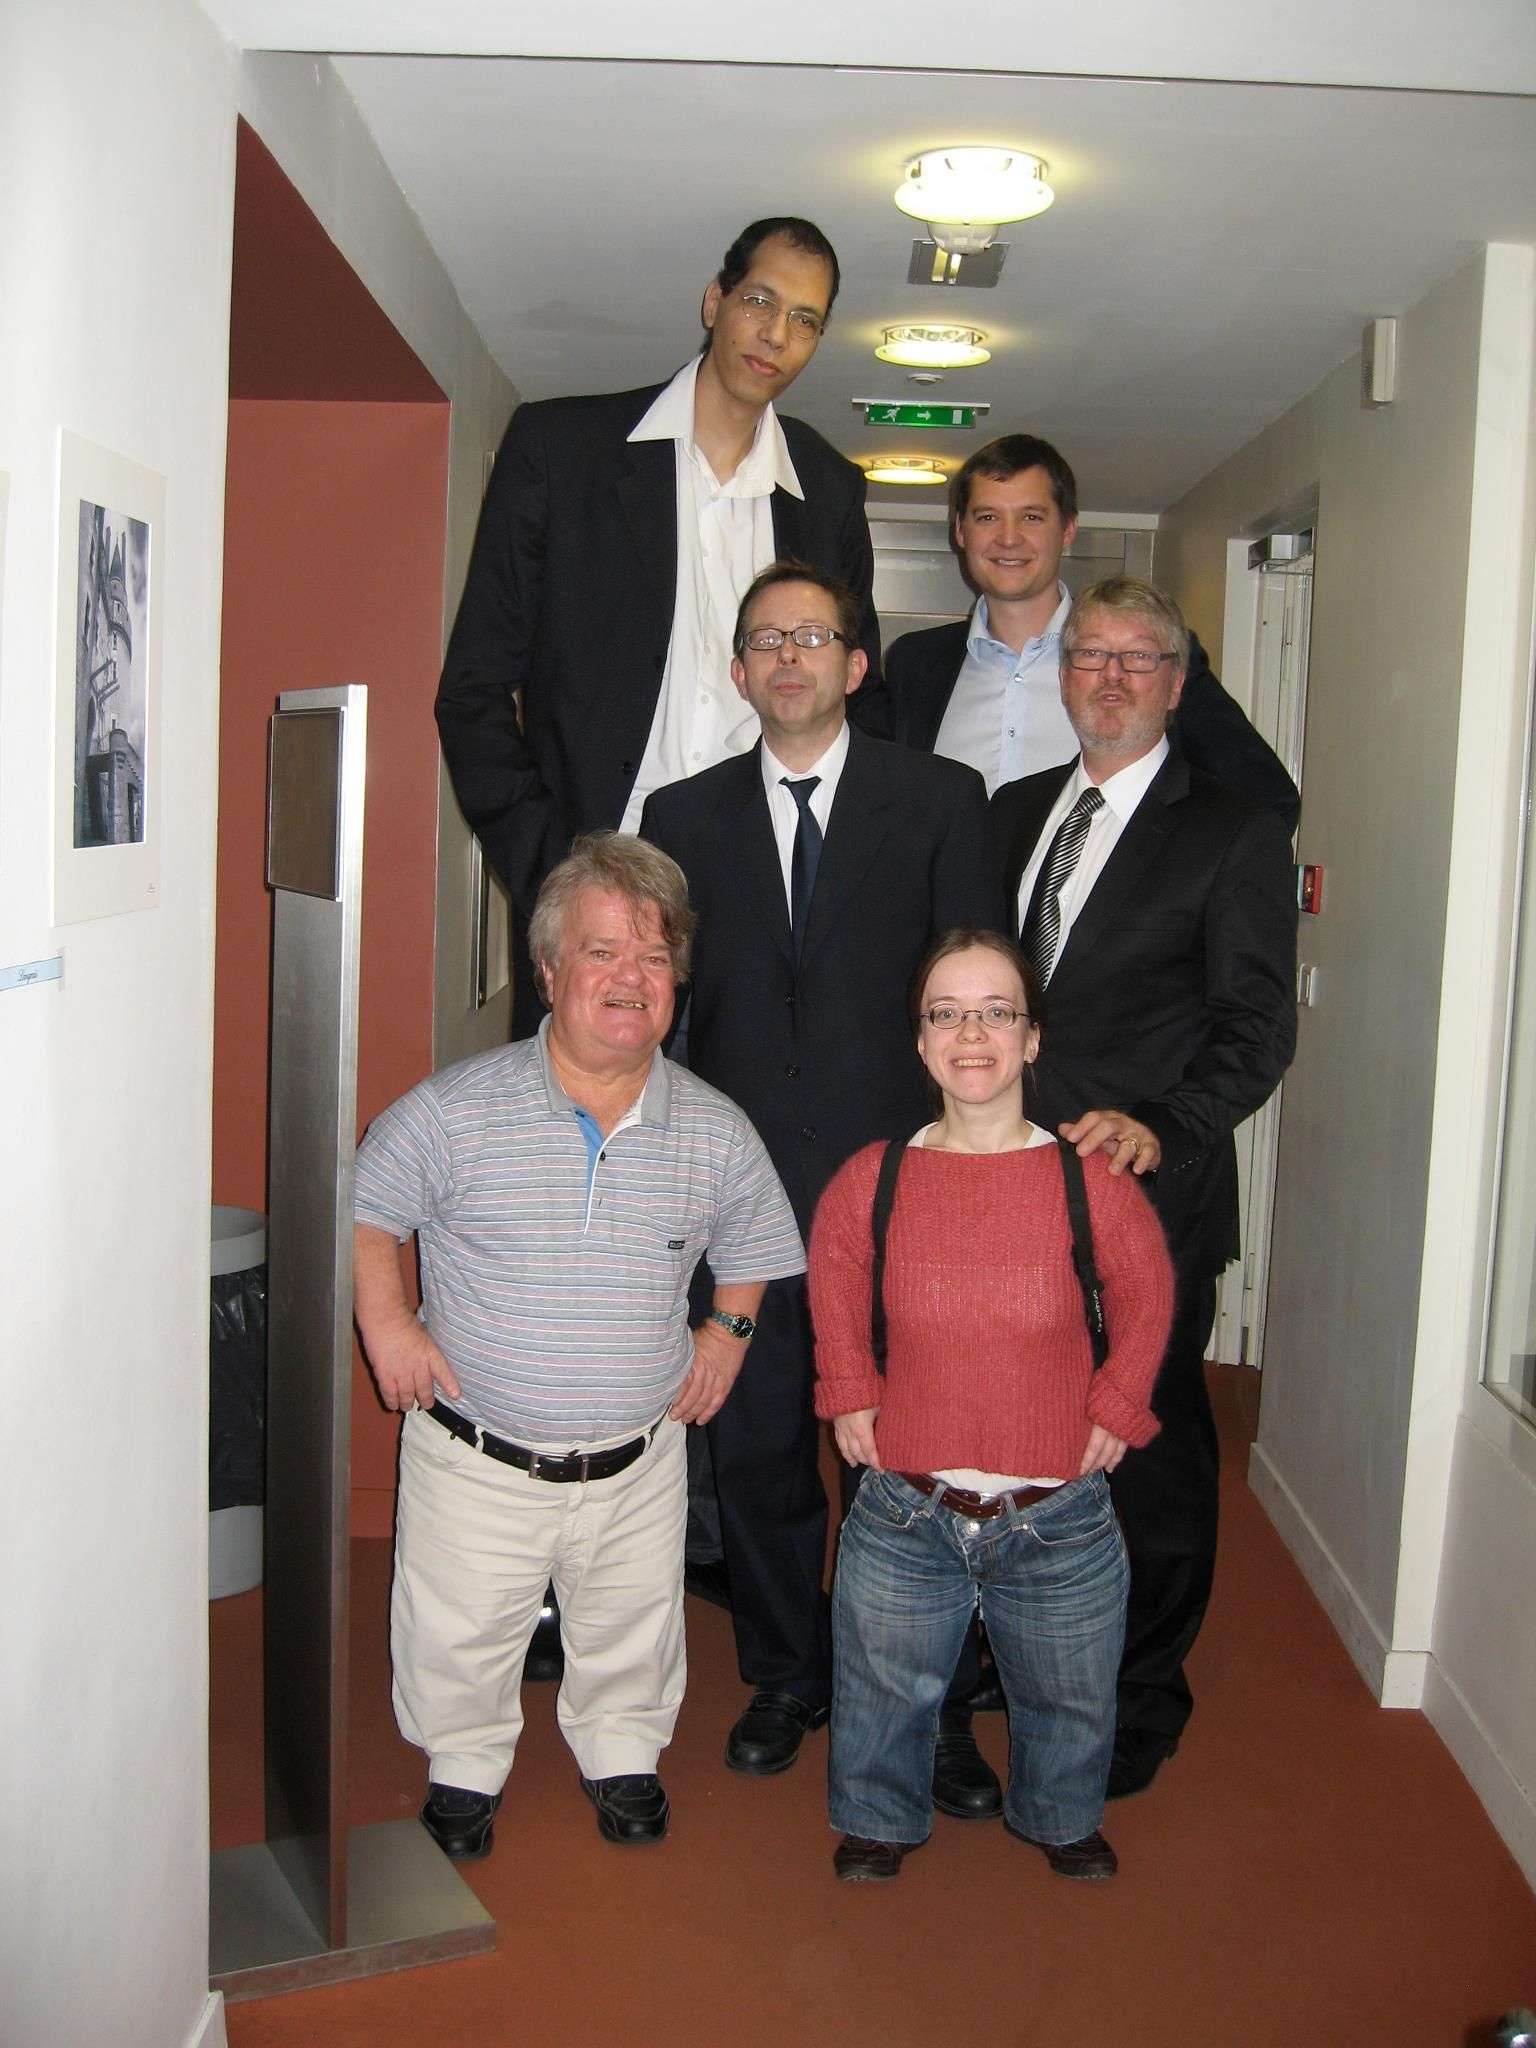 Brahim Takioullah World 2nd Tallest Living With Alphonse Proffit Vice President DAltitudes 6 Feet 67 Inches 200 Cm And 2 Representatives Of The